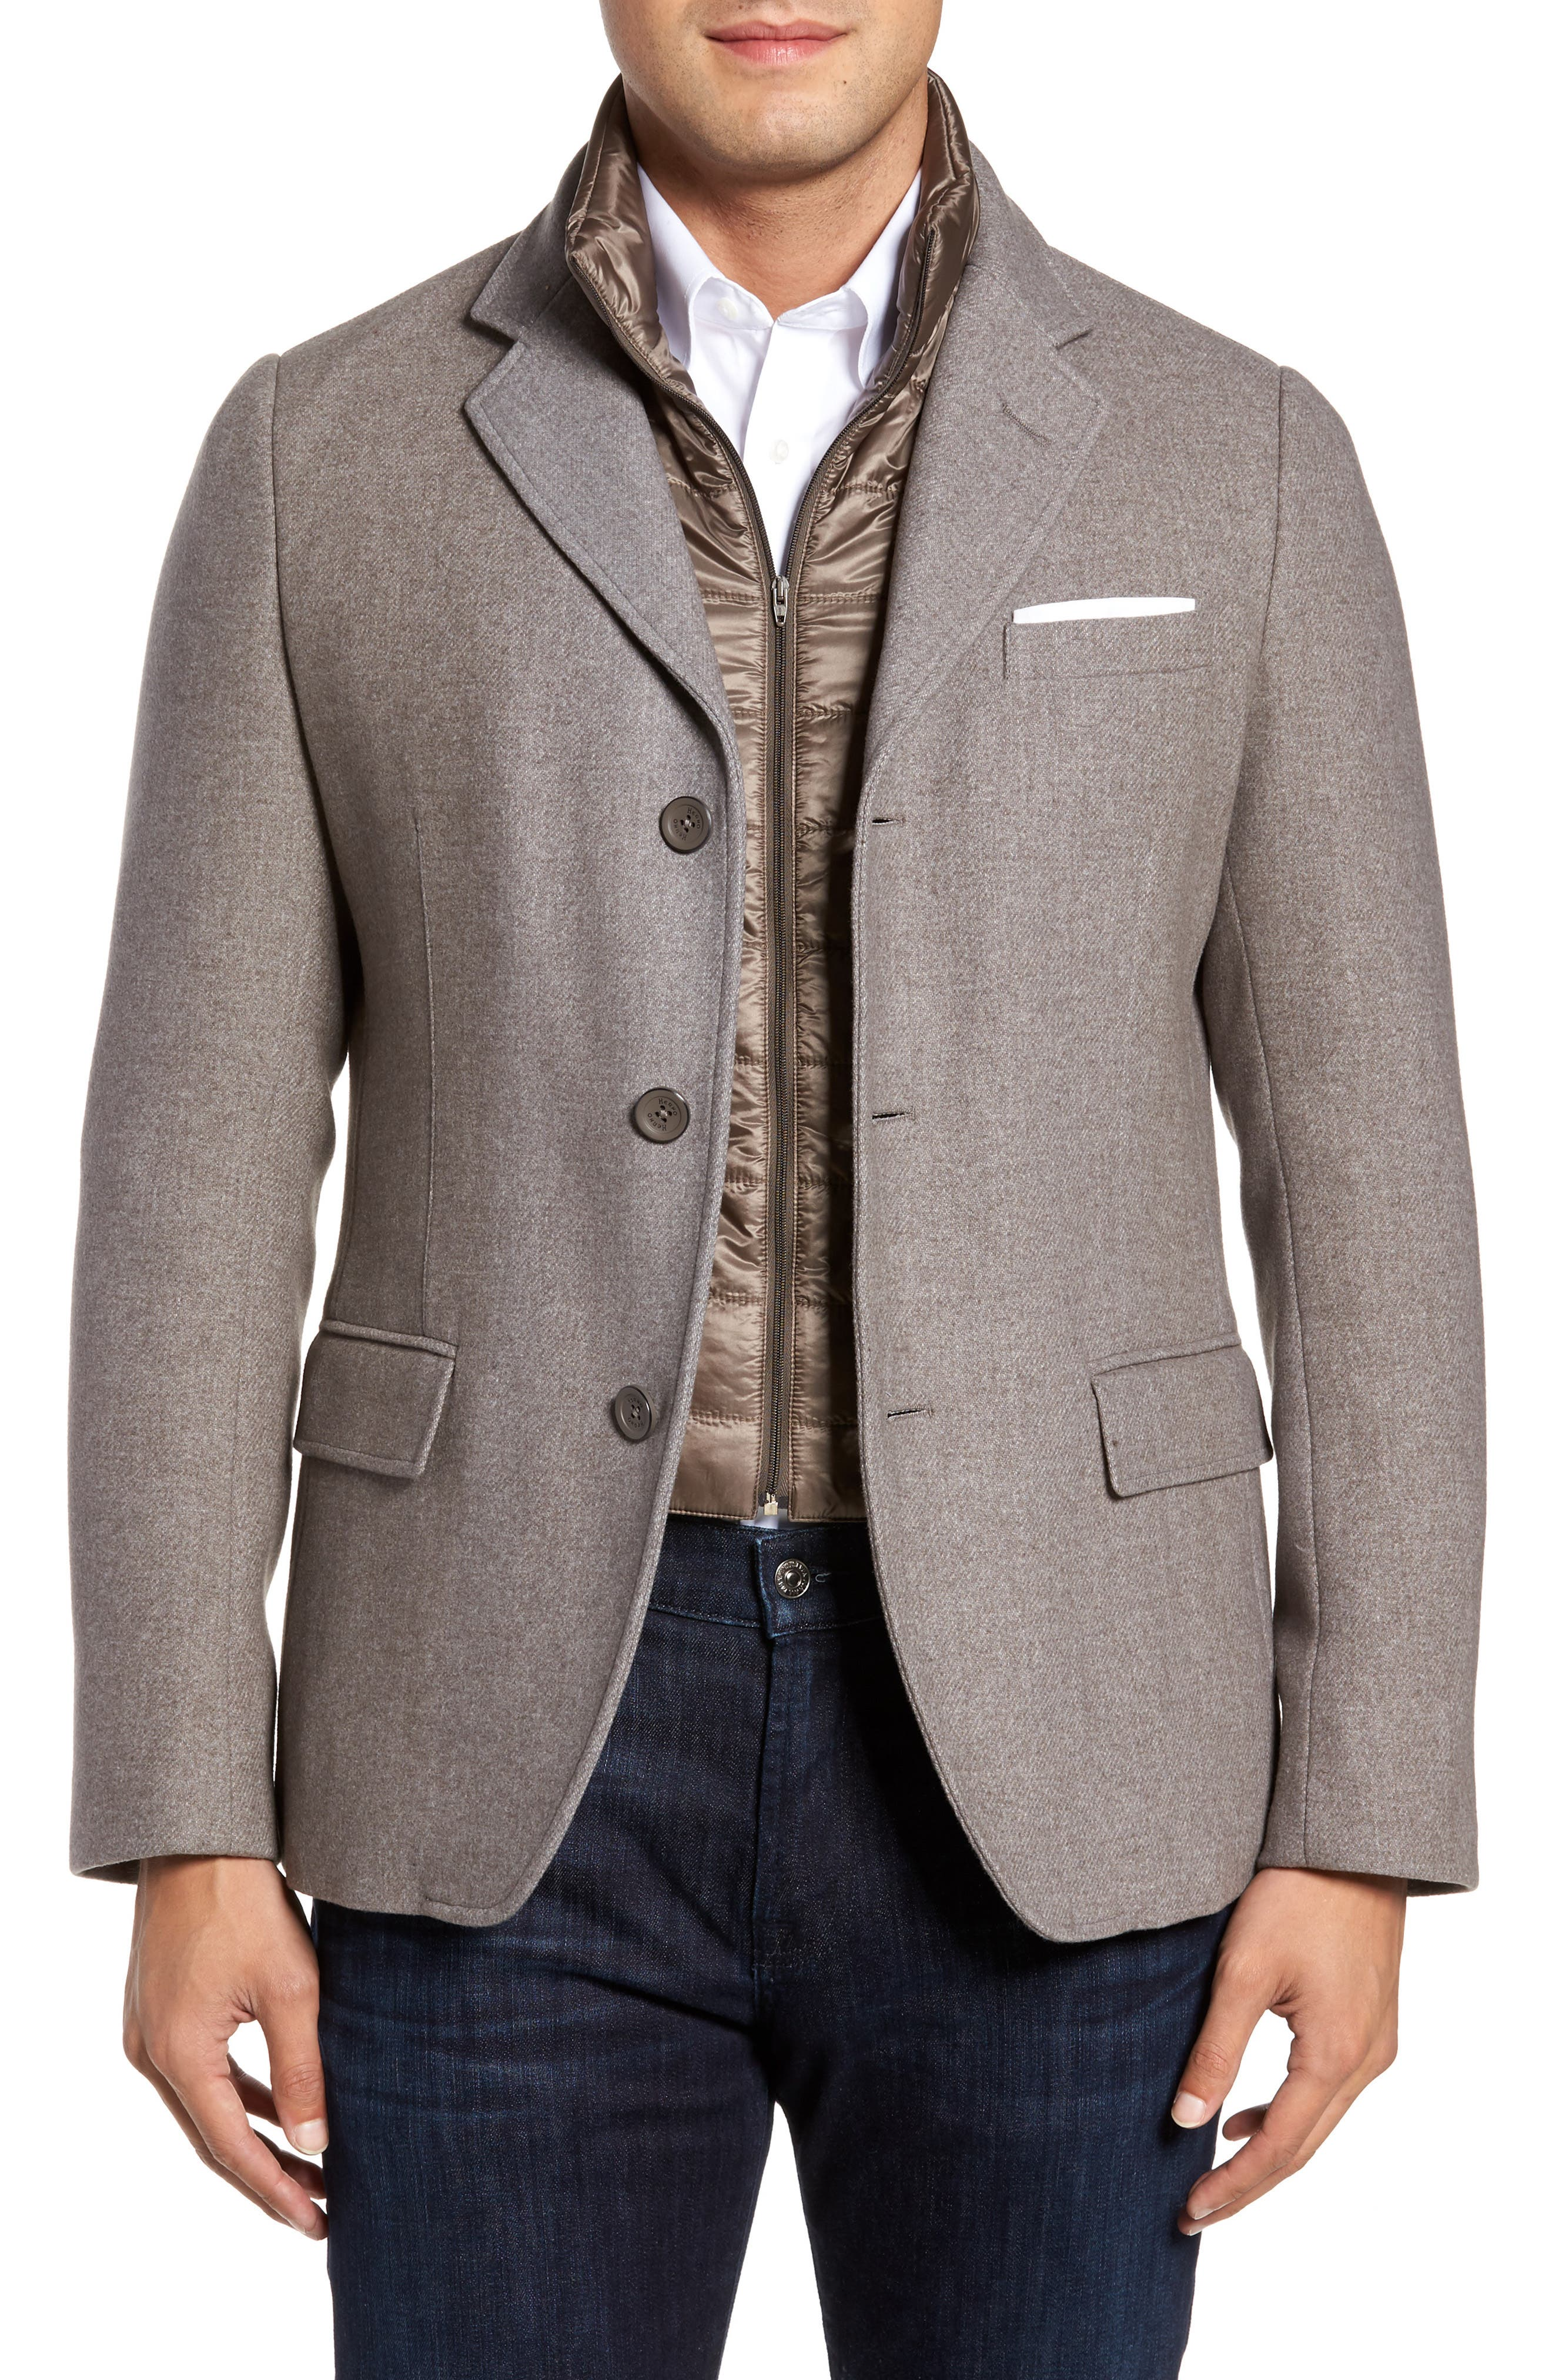 Wool Blend Blazer with Removable Quilted Bib,                             Main thumbnail 1, color,                             Oatmeal